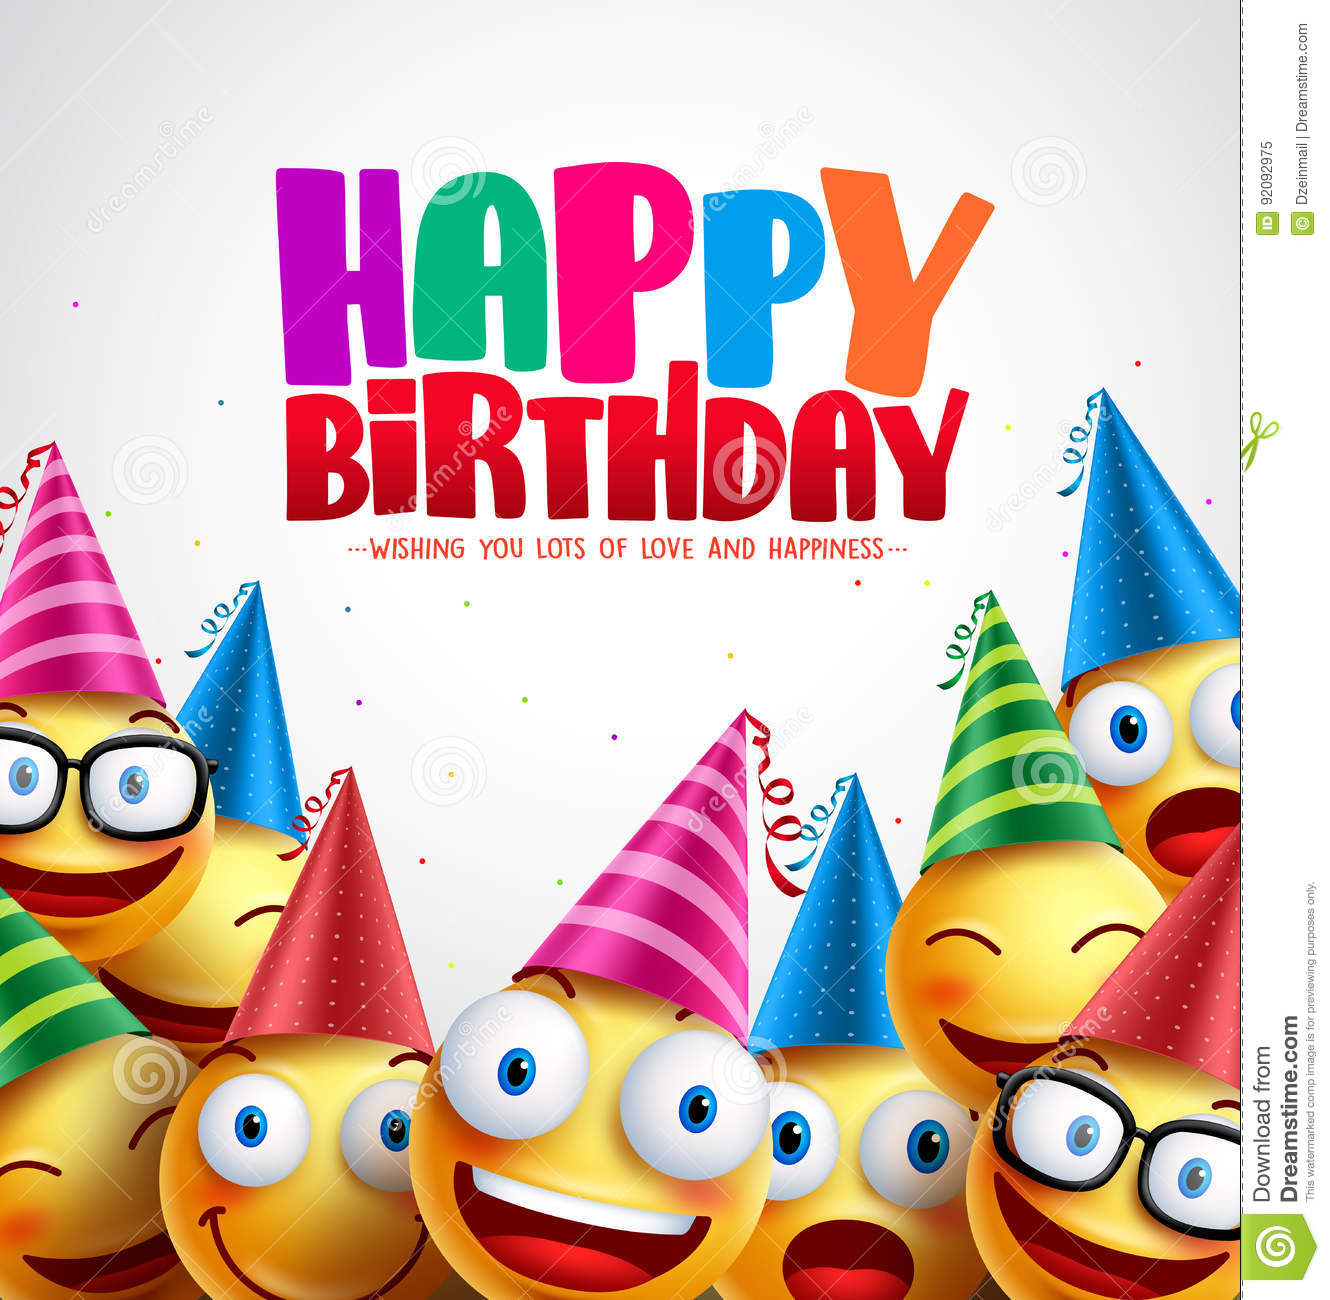 Smiley happy birthday greeting card colorful vector background